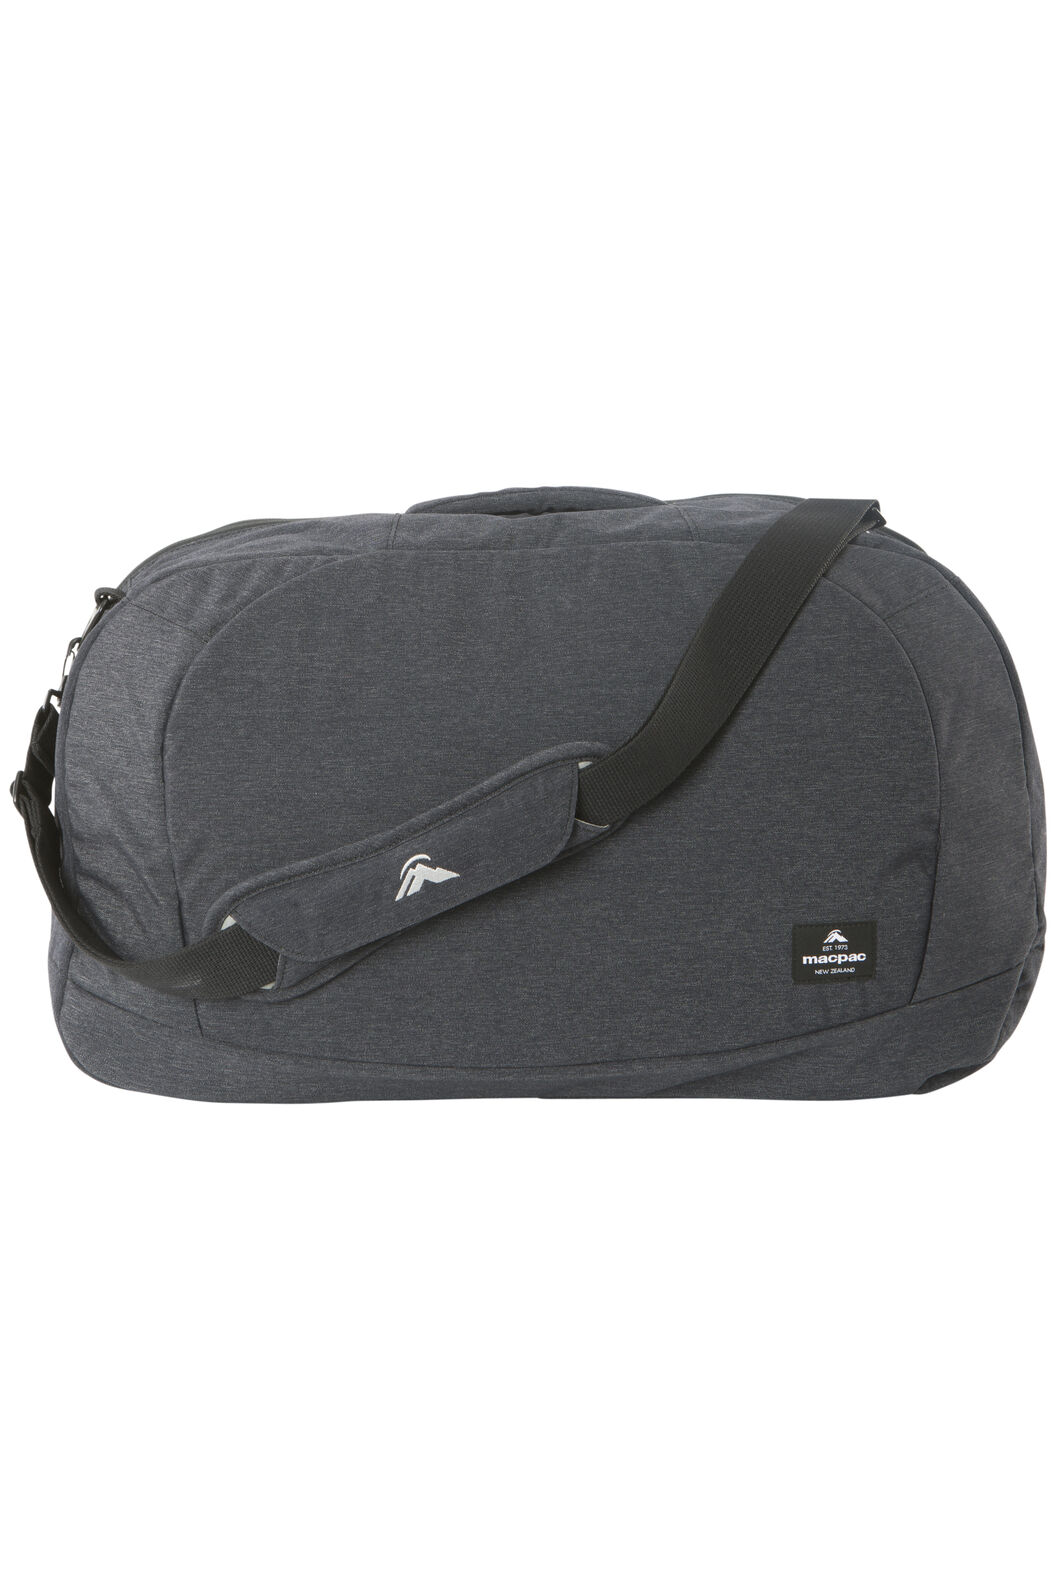 ITOL 35L Travel Duffel, Black, hi-res